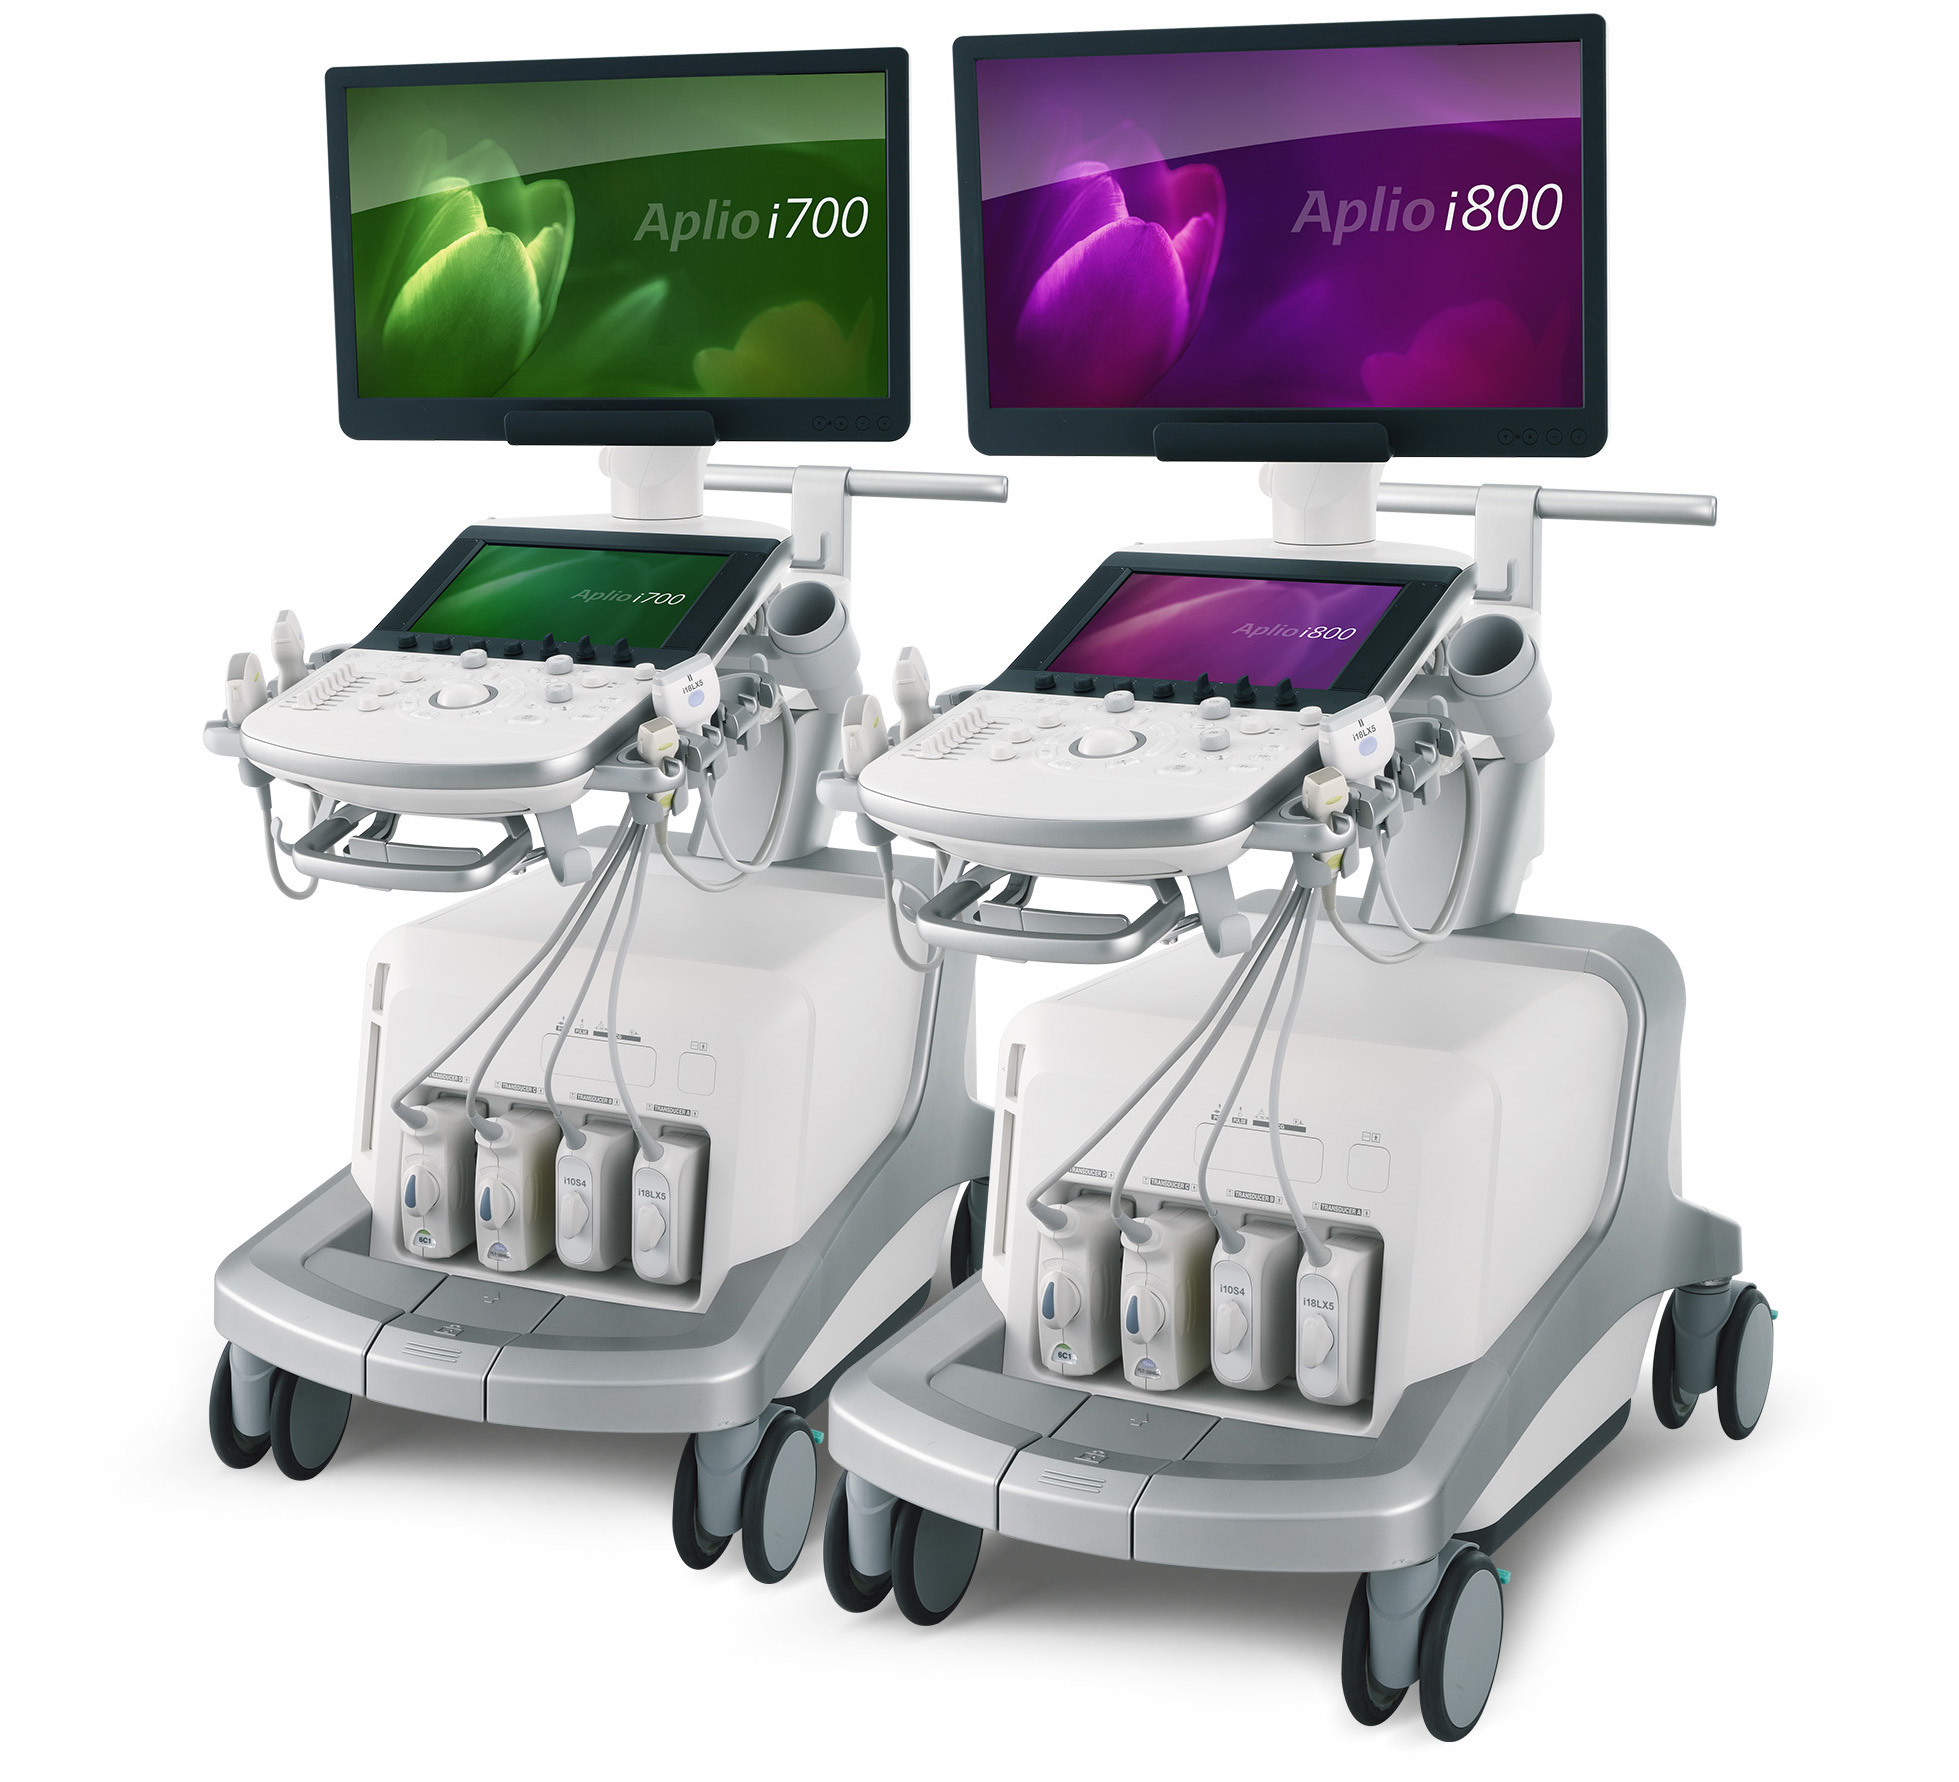 Ultrasound Aplio i-Series Machines